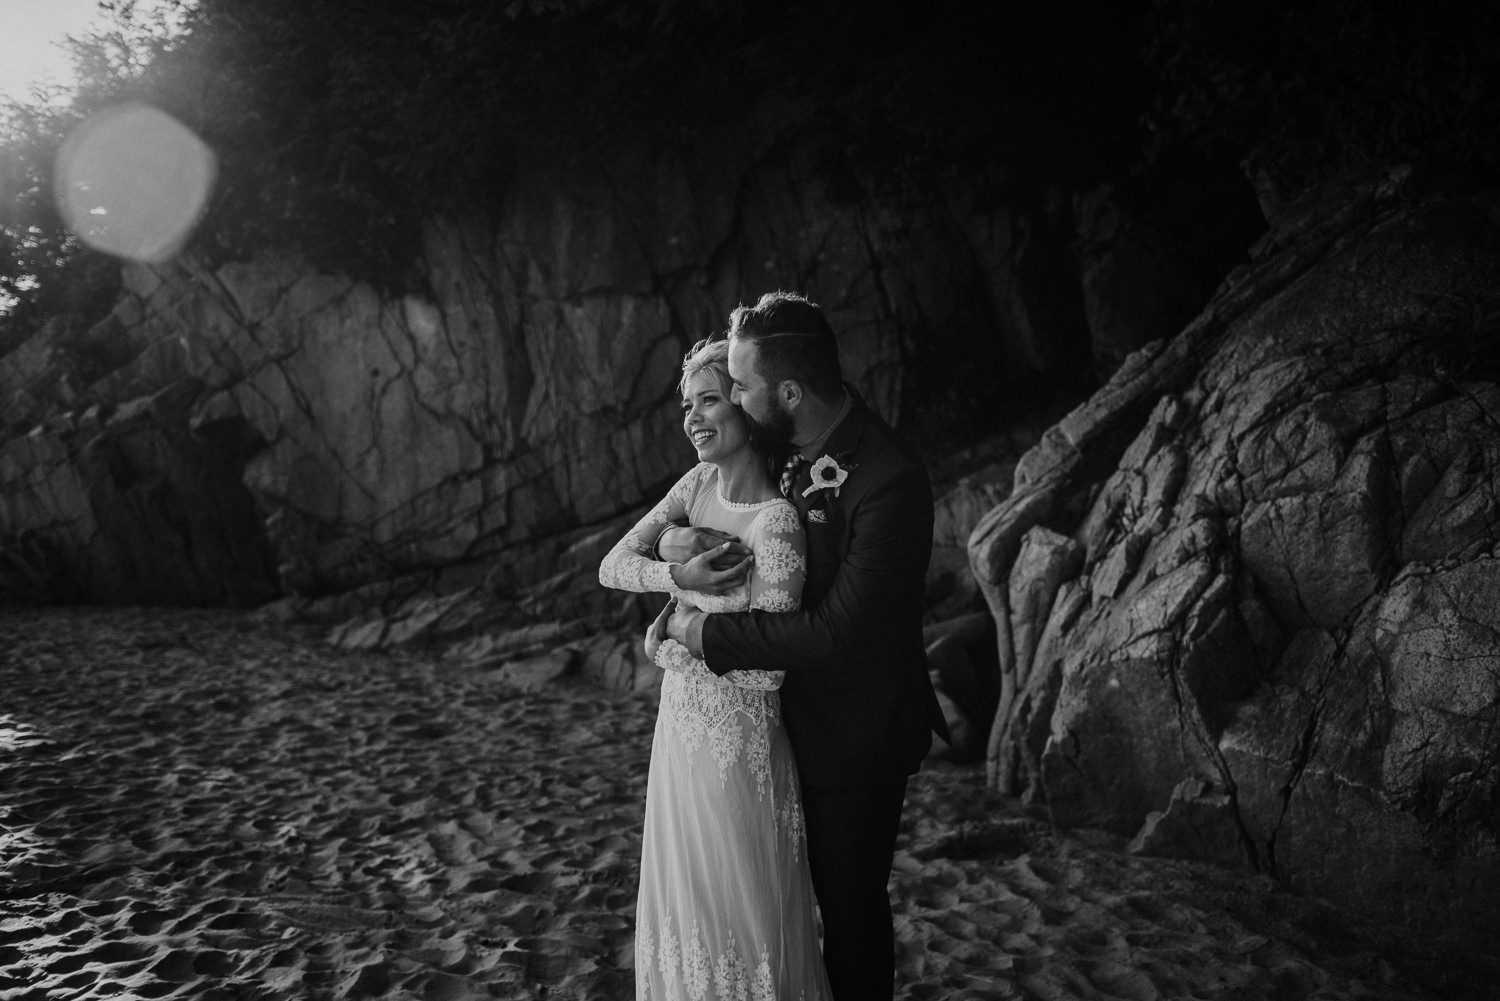 Sarah + Brent - Tofino, BCAnyone who has gotten married will tell you the hardest part is finding a photographer who can capture those special moments. This was especially true for my husband and I as we are both from Ontario and decided to elope to Tofino, BC. Sara has exceeded our expectations from the breathtaking pictures she took, to the prompt communication, and her ability to make you feel comfortable in front of the camera. Sara is fantastic at what she does and so easy to work with. Throughout the entire process, Sara was there for us helping us along the way with scouting locations and answering any other questions we had via email. We're so happy we found Sara to capture our wedding day. Thank you from the bottom of our hearts.